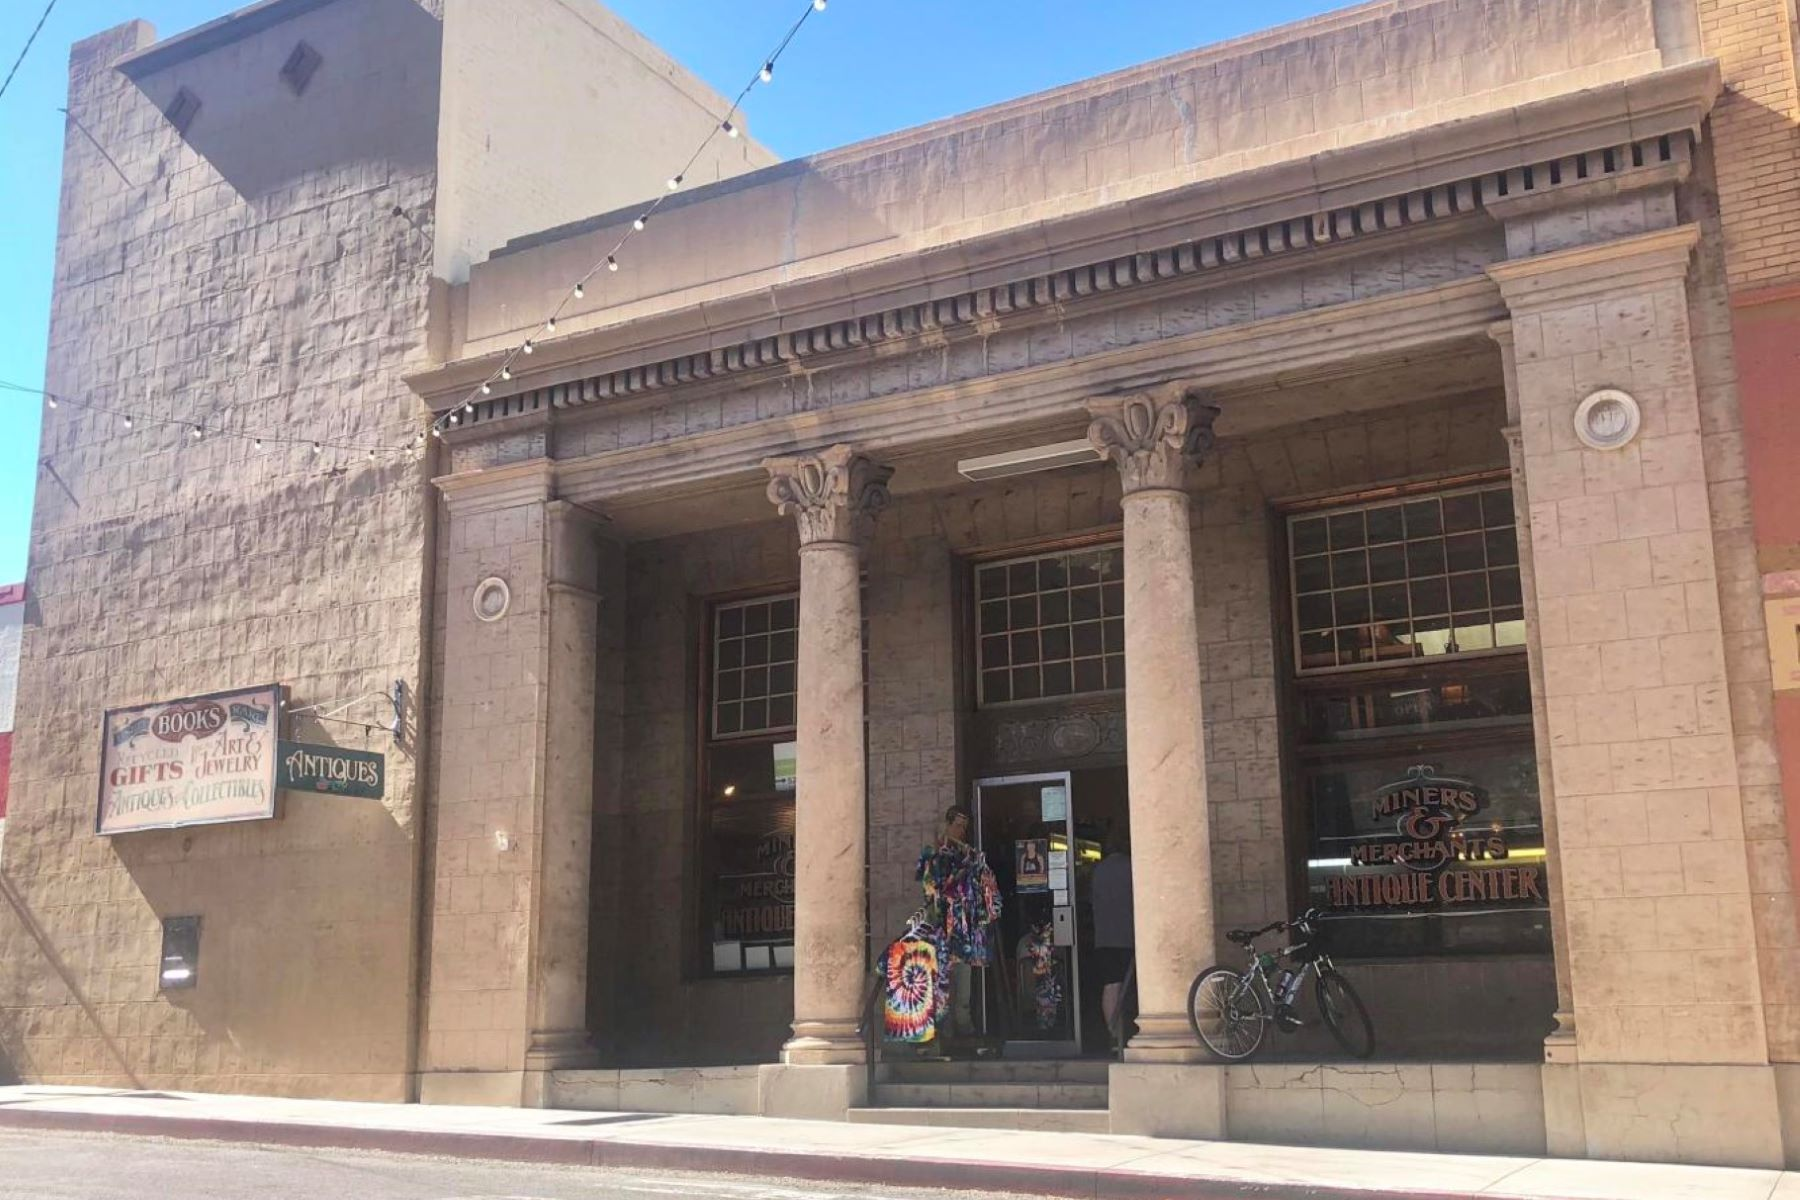 Single Family Homes for Sale at Historical Bisbee Bank is Now For Sale 7 Main Street Bisbee, Arizona 85603 United States